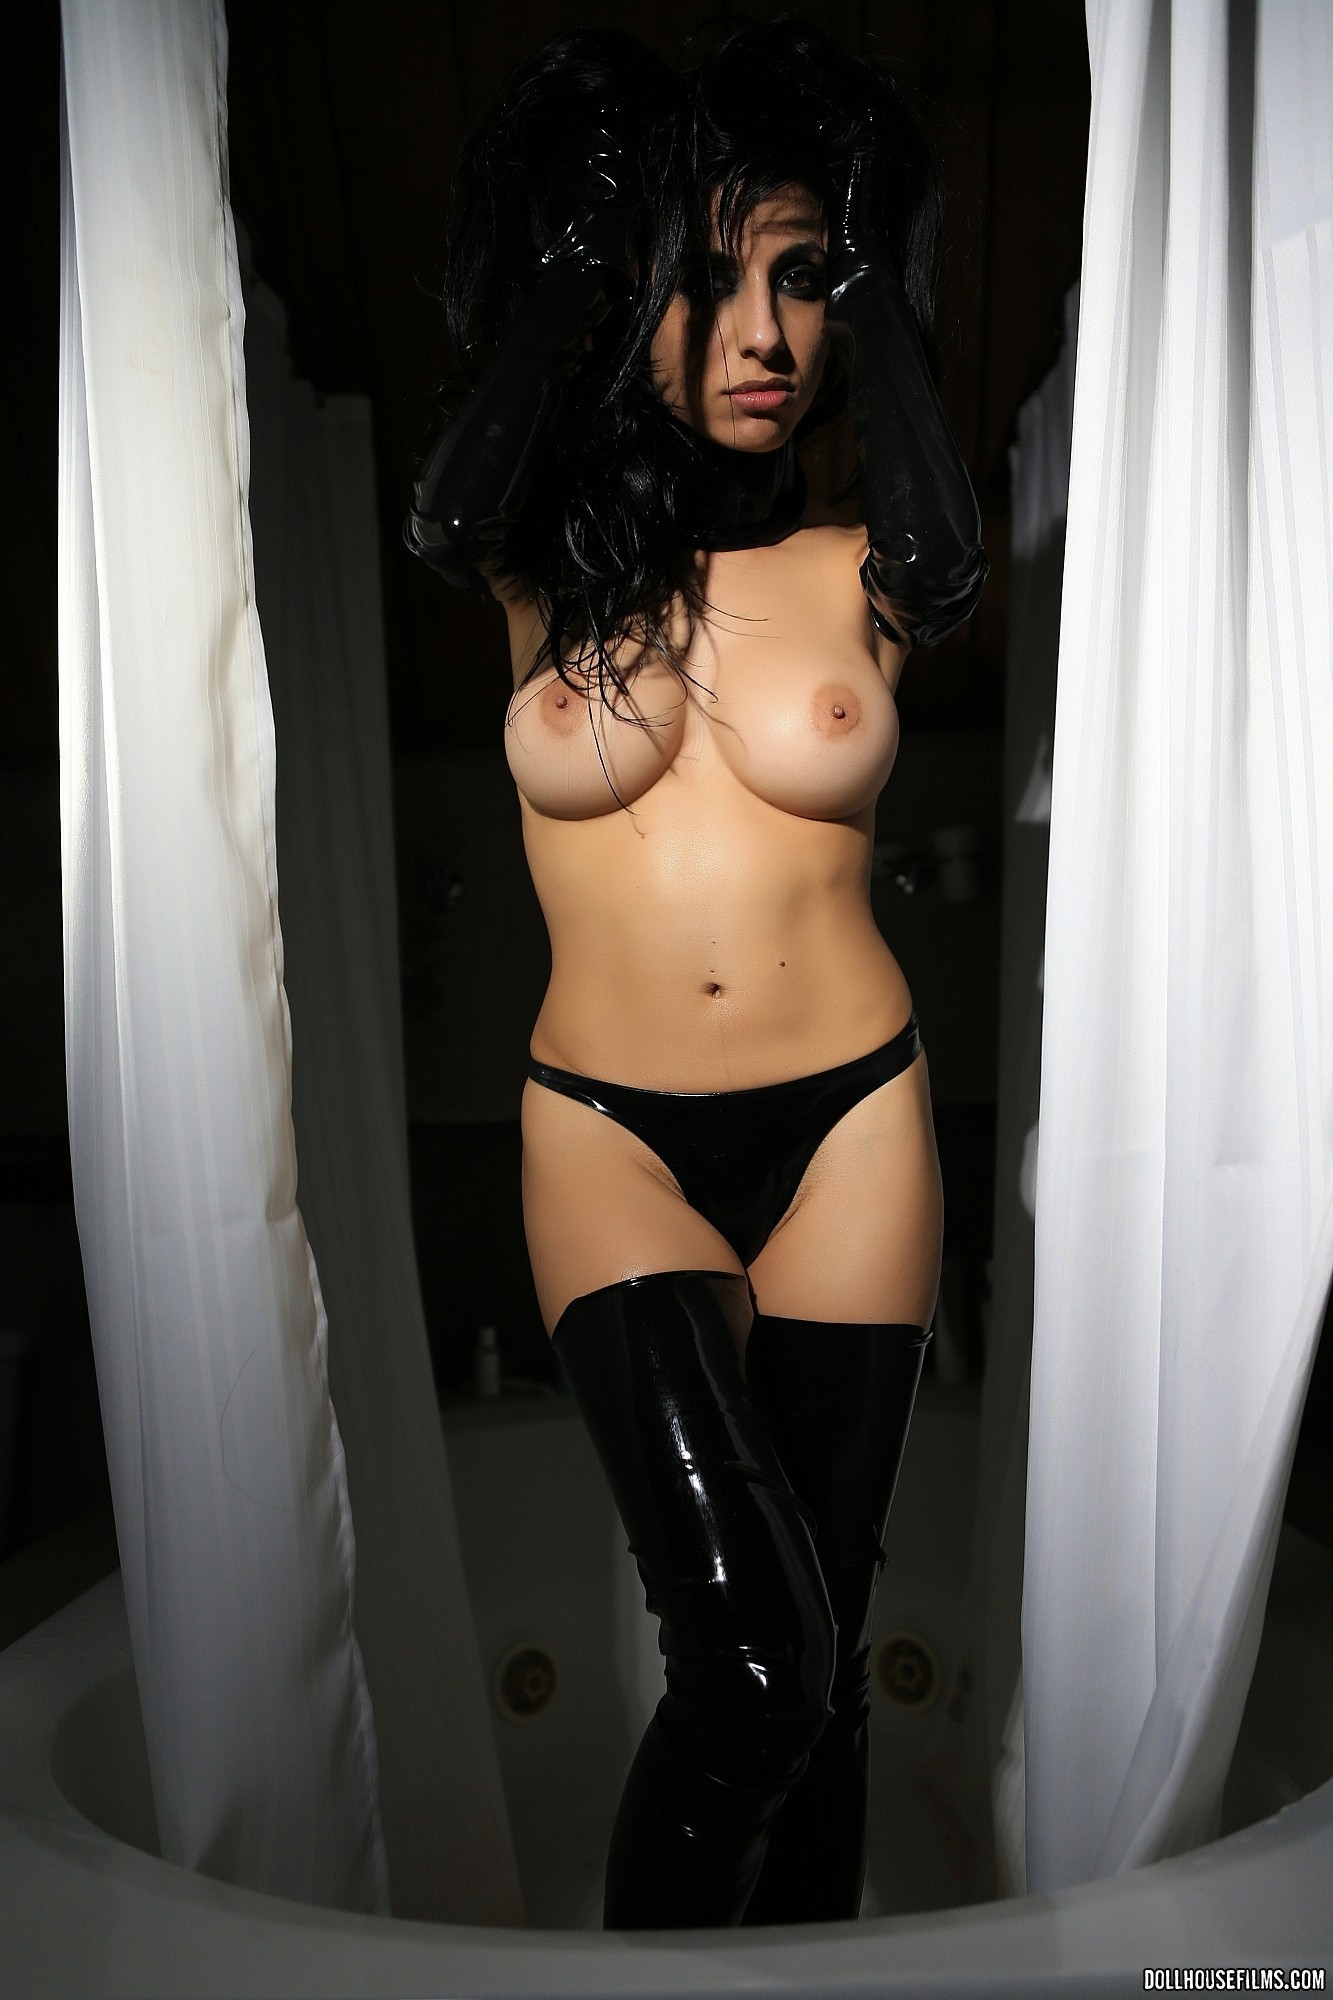 interacial porn videos and sex movies tube #DangerCore#emoslut#gothgirl#breasts#latexstockings#longhair#LatexGloves#IdelsyLove